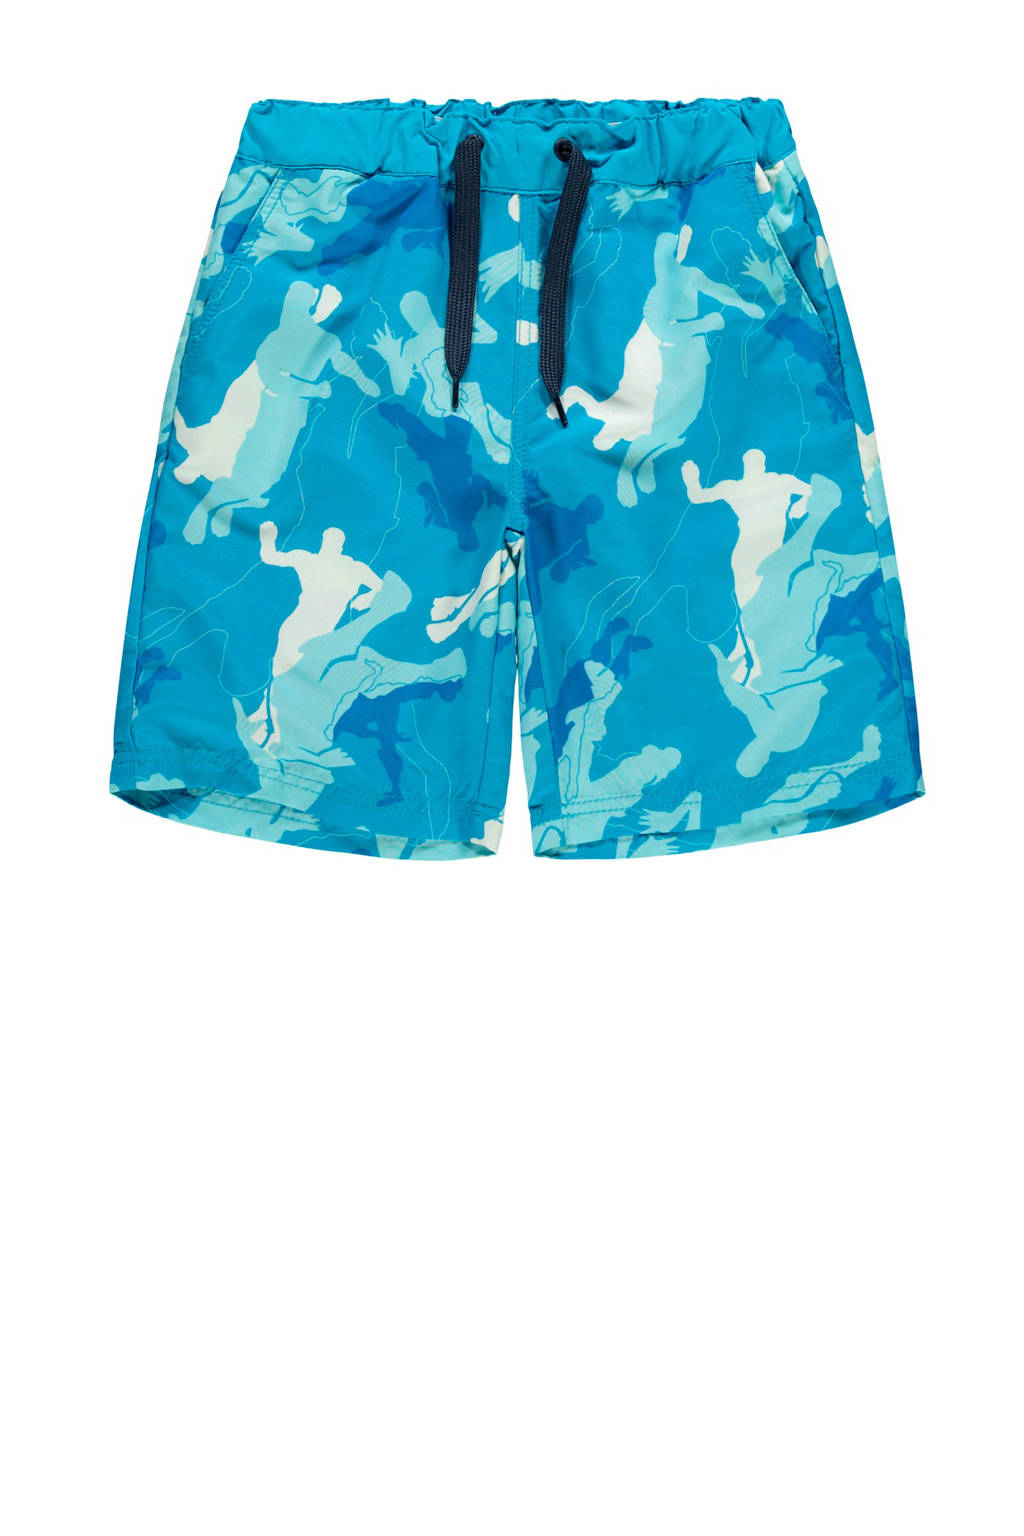 NAME IT KIDS zwemshort Mateo blauw, Blauw